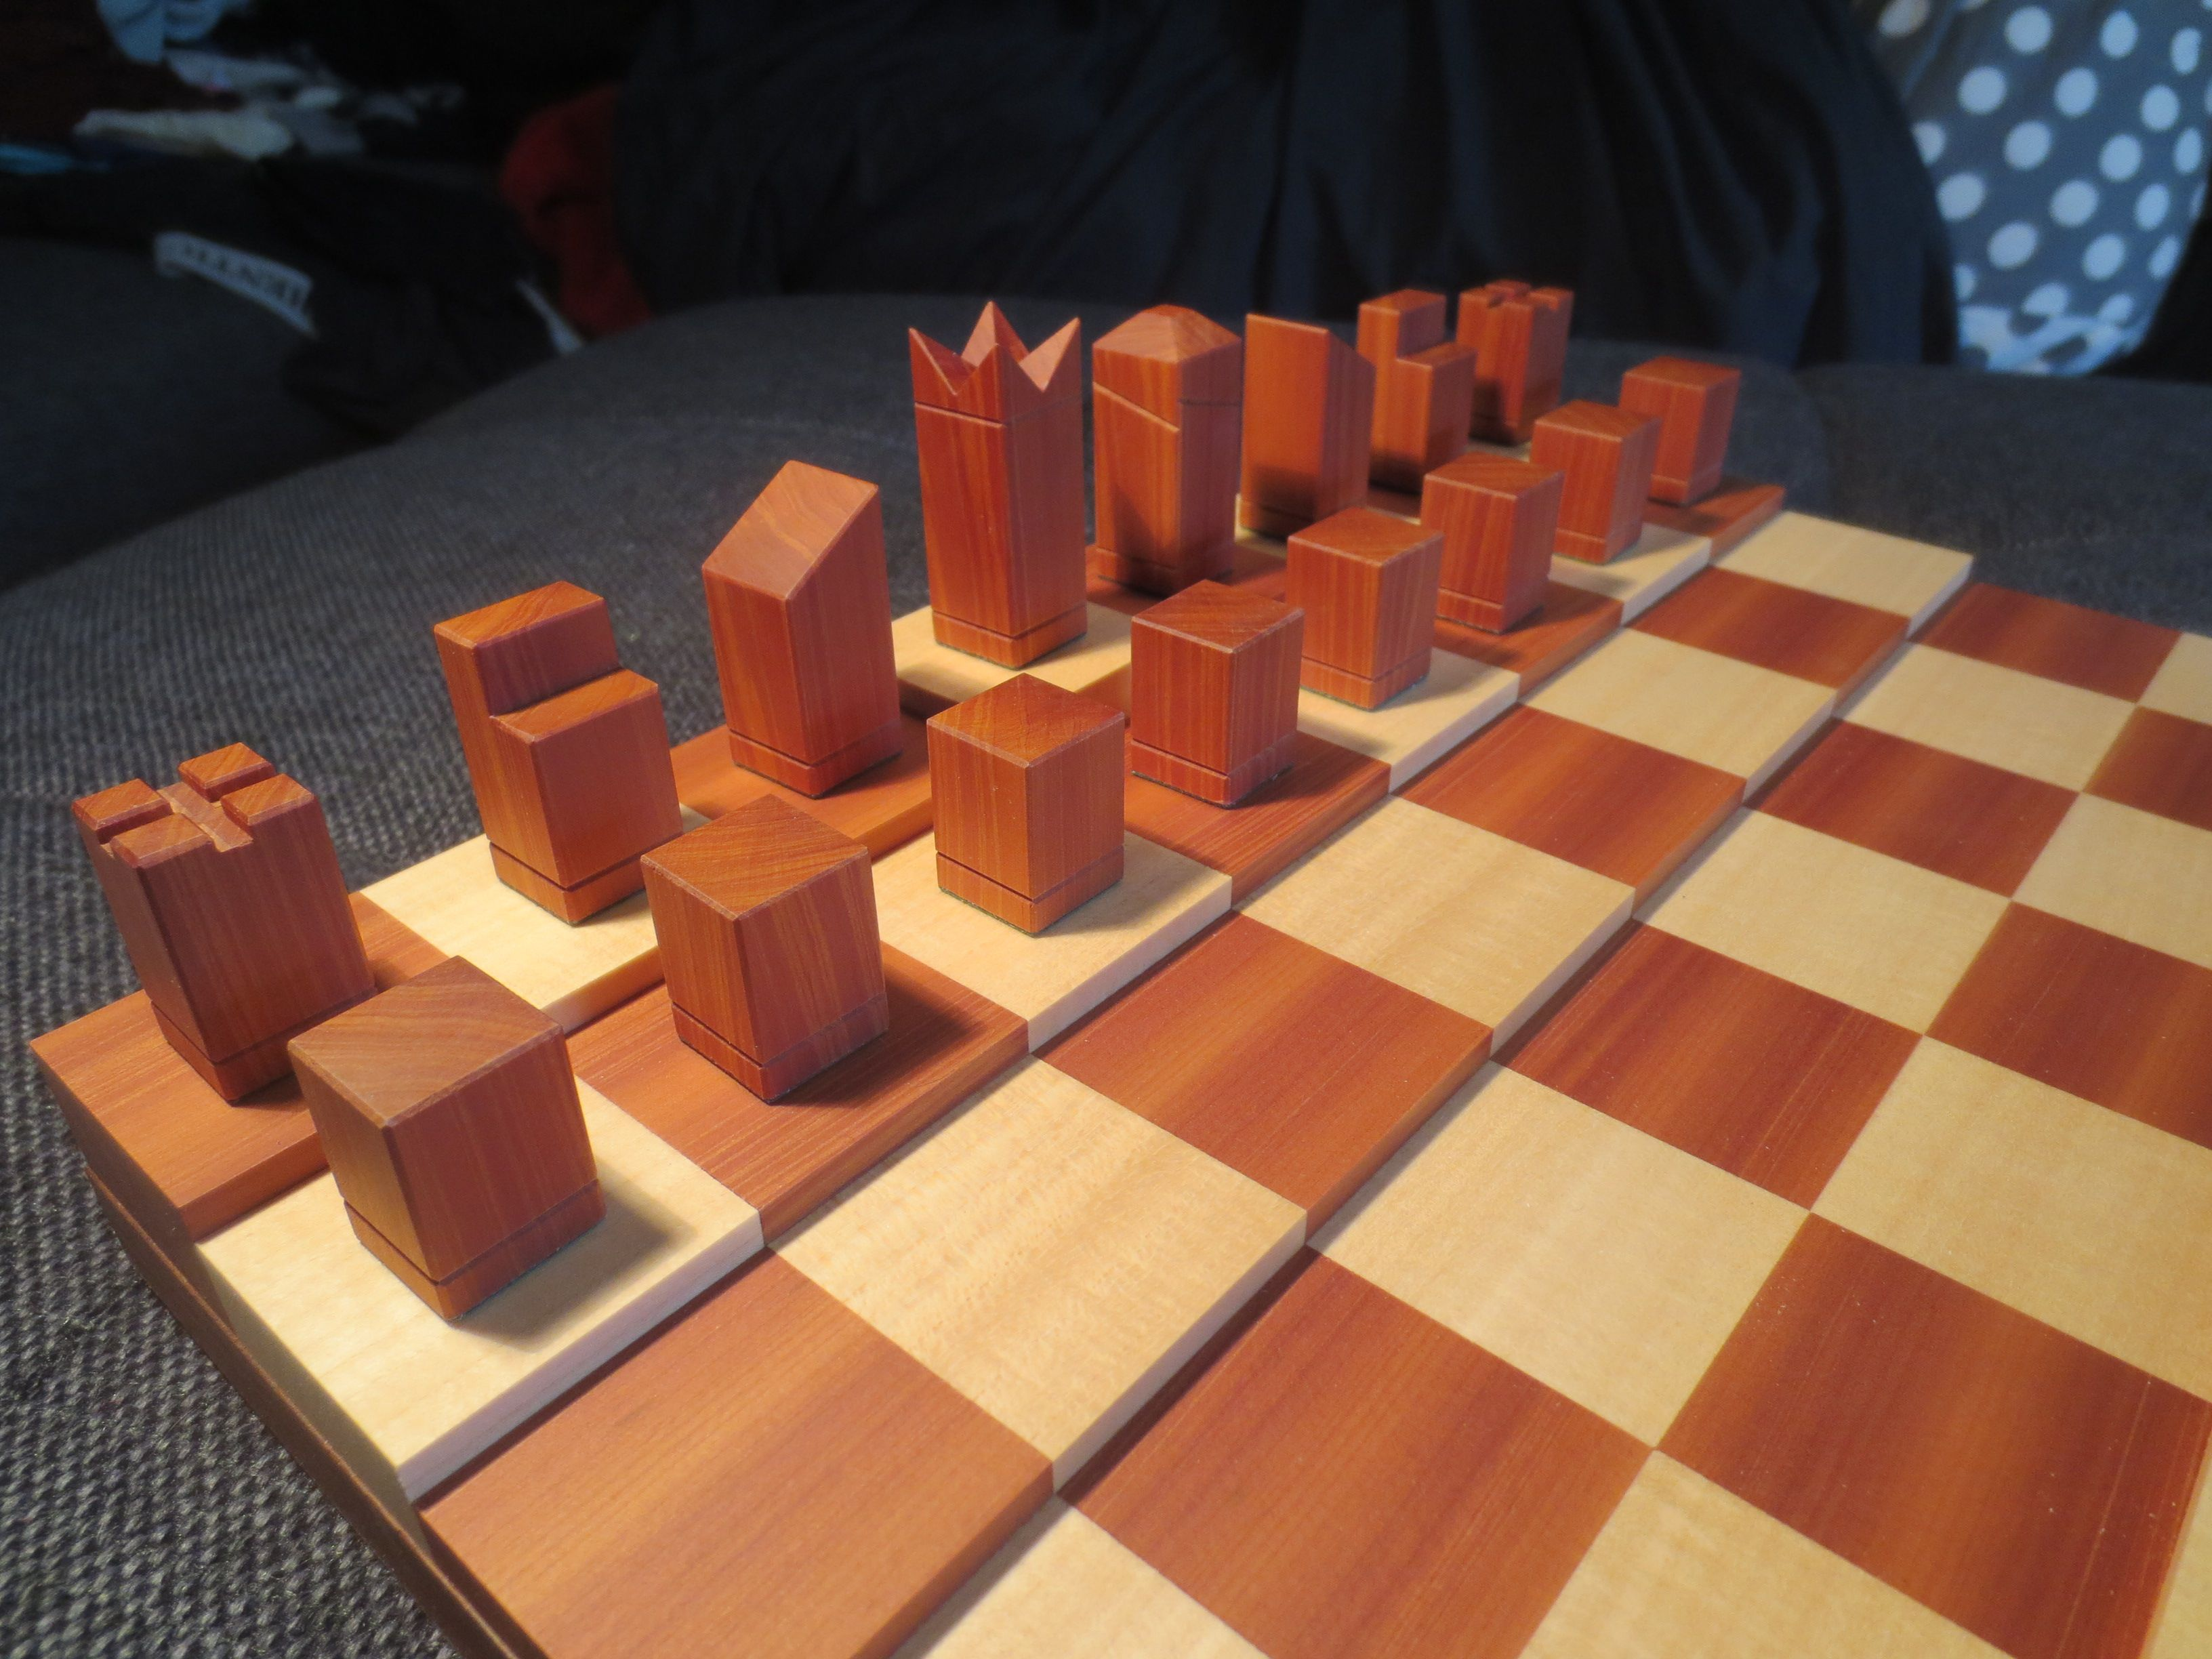 How To Make A Simple Yet Sophisticated Chess Set